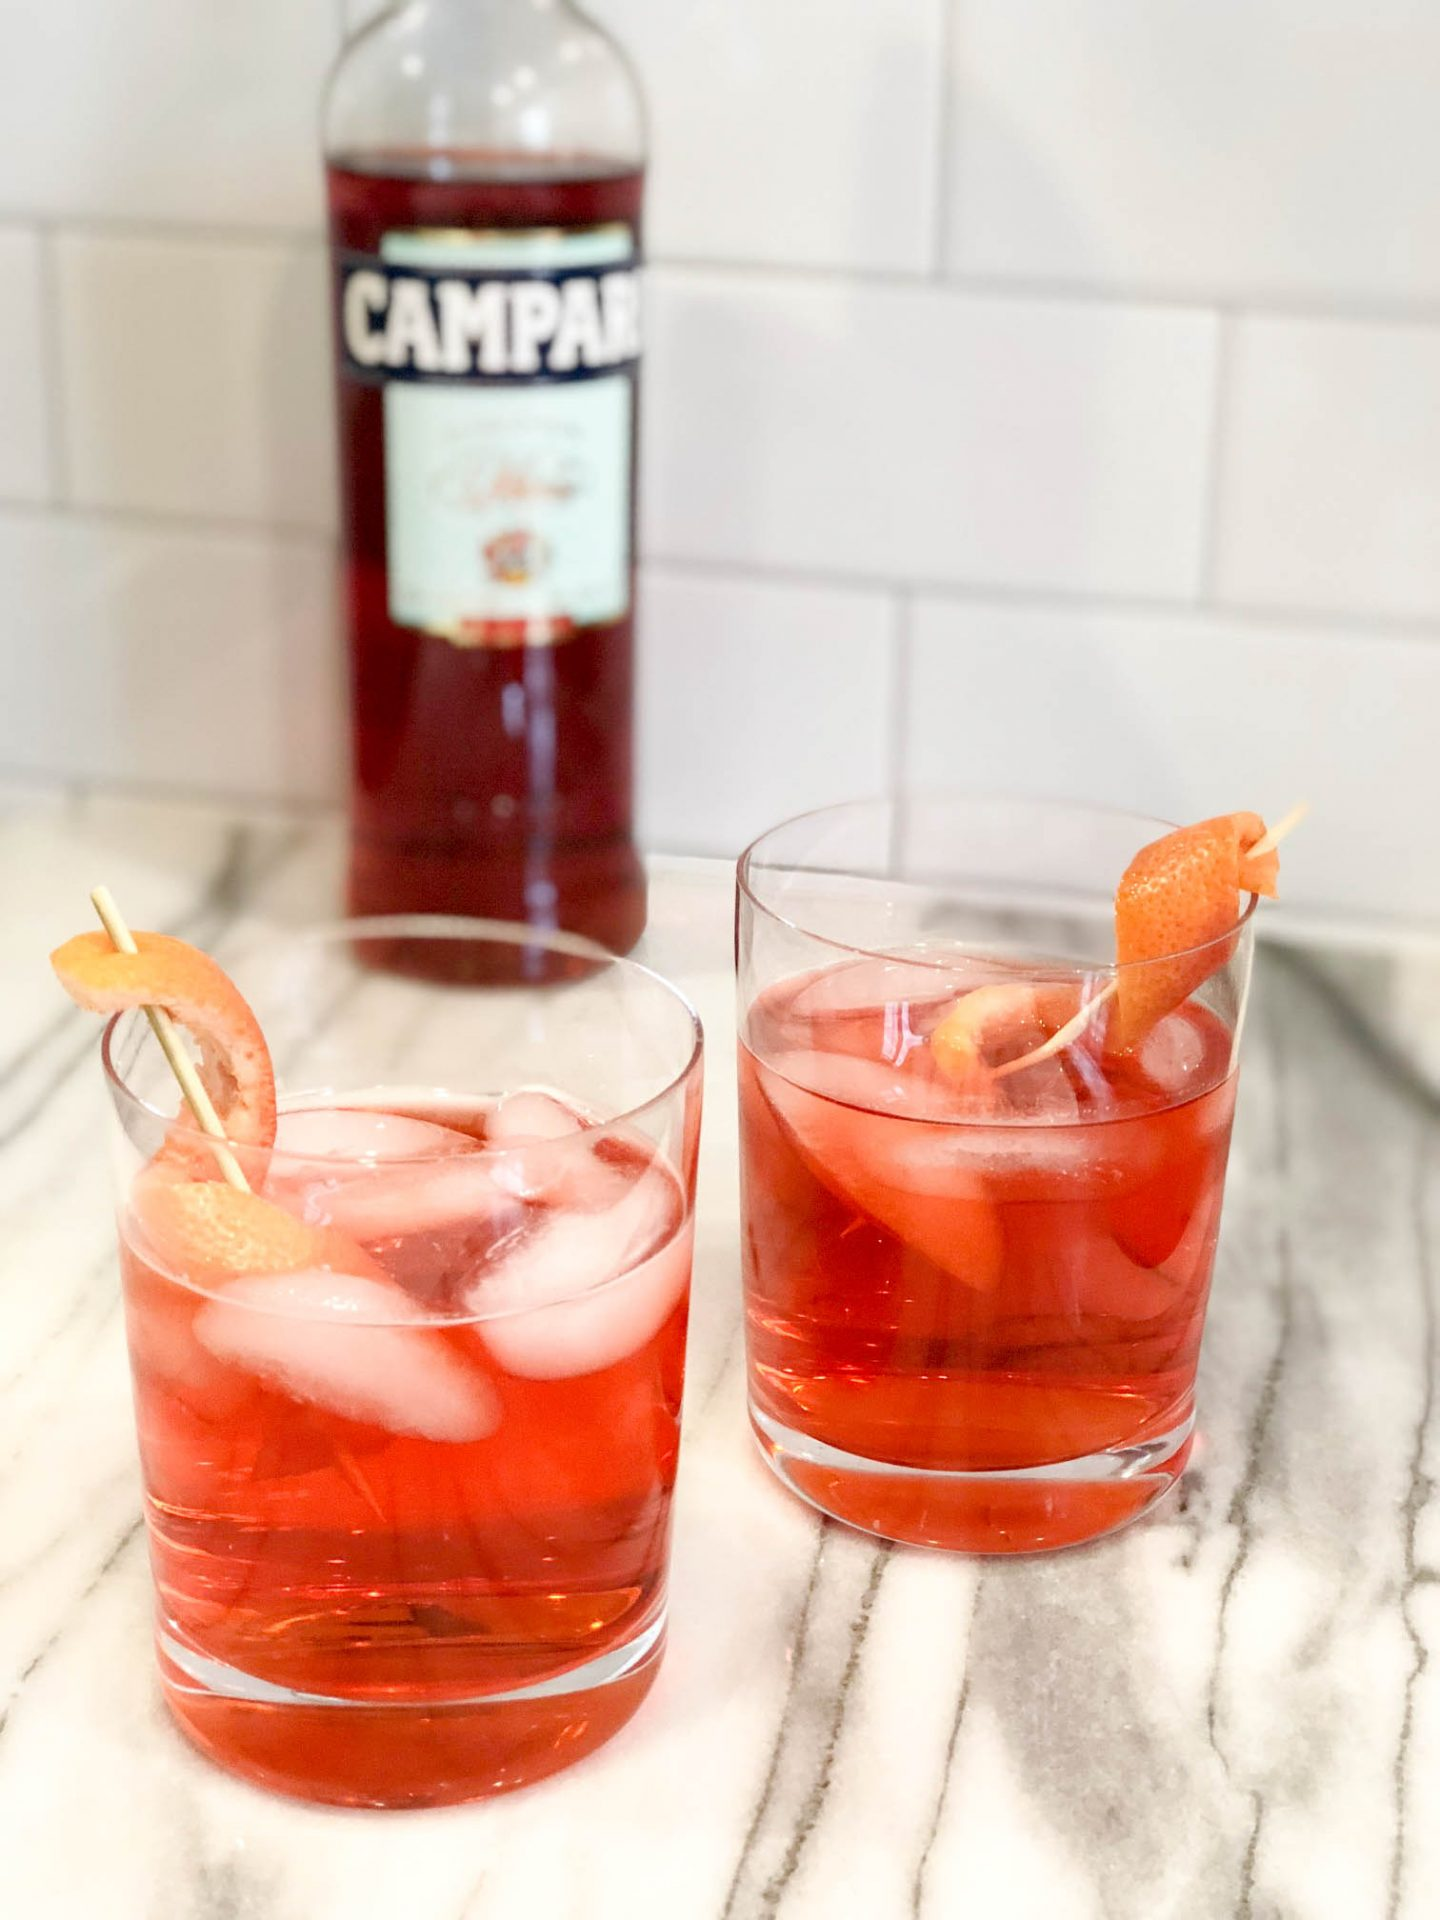 The Campari Red Diaries